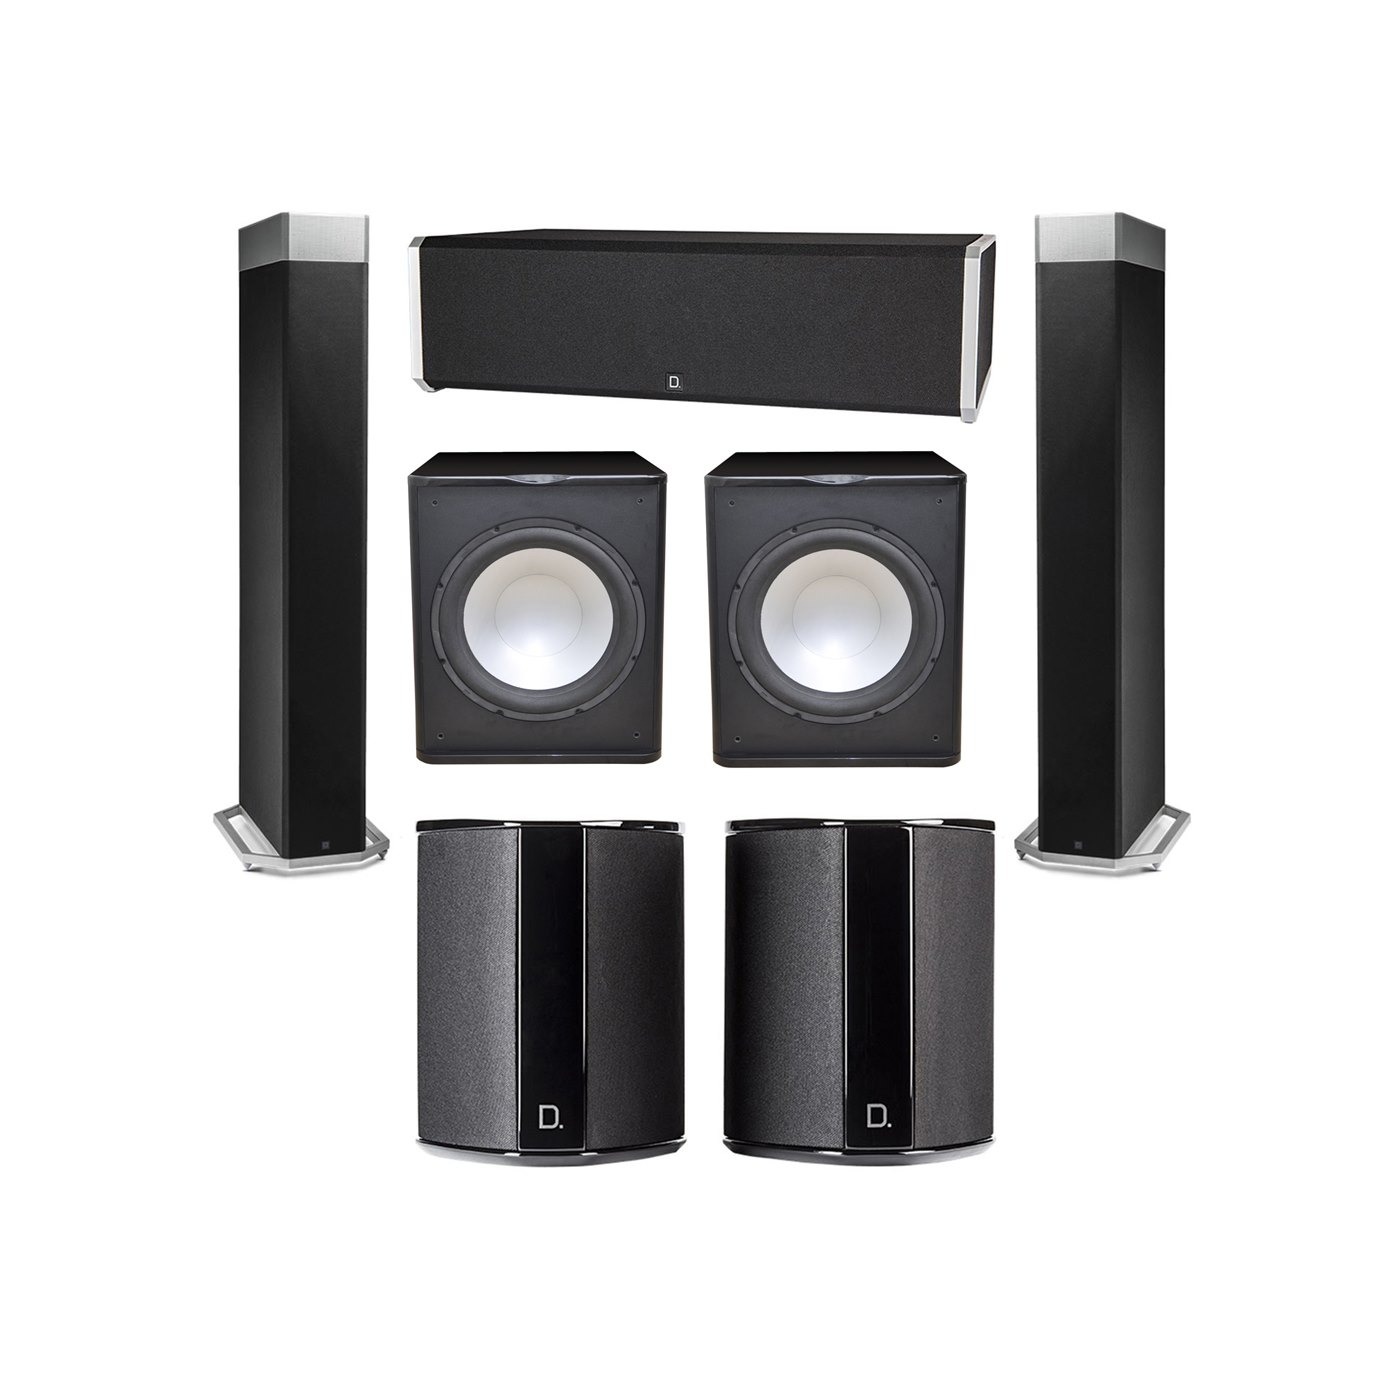 Definitive Technology 5.2 System with 2 BP9080X Tower Speakers, 1 CS9040 Center Channel Speaker, 2 SR9040 Surround Speaker, 2 Premier Acoustic PA-150 Subwoofer